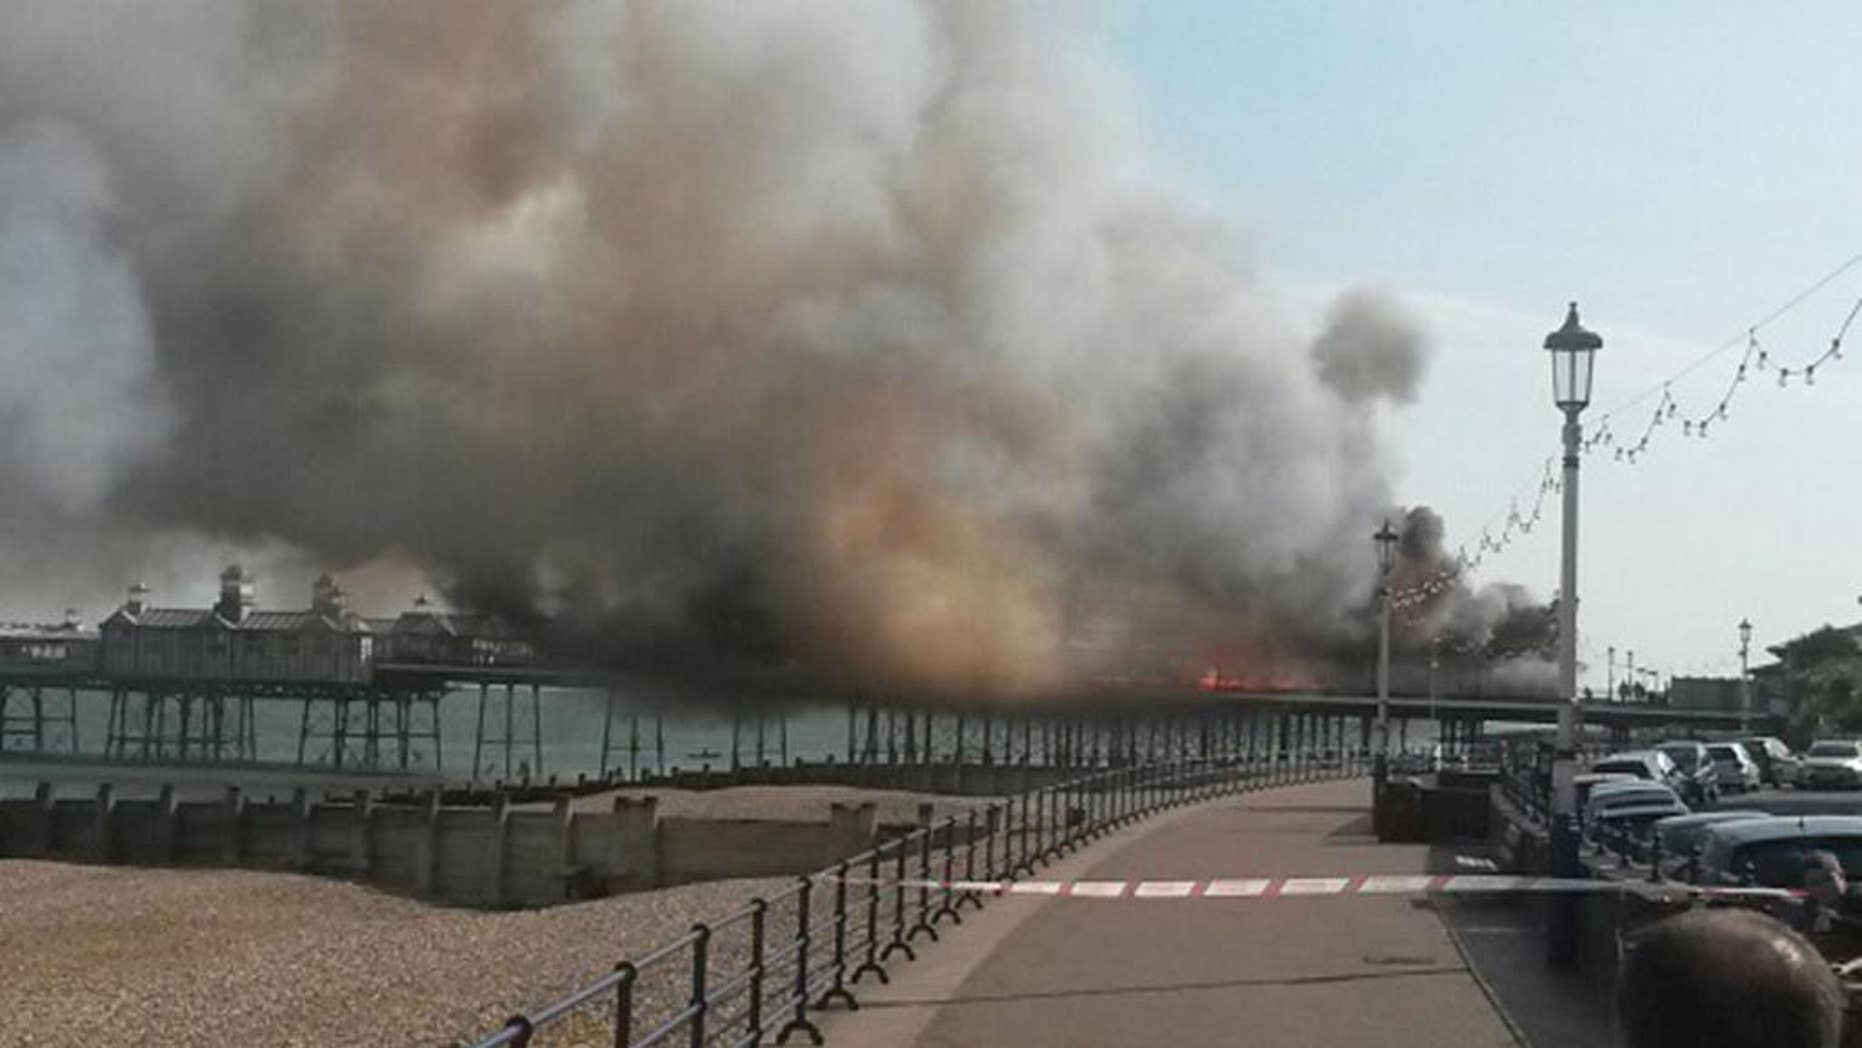 A fire has broken out on Eastbourne Pier, East Sussex, England, Wednesday, July 30, 2014. East Sussex Fire and Rescue Service crews are at the scene of the incident which has been documented by onlookers posting photographs on Twitter. (AP Photo/PA, Tom Pugh) UNITED KINGDOM OUT